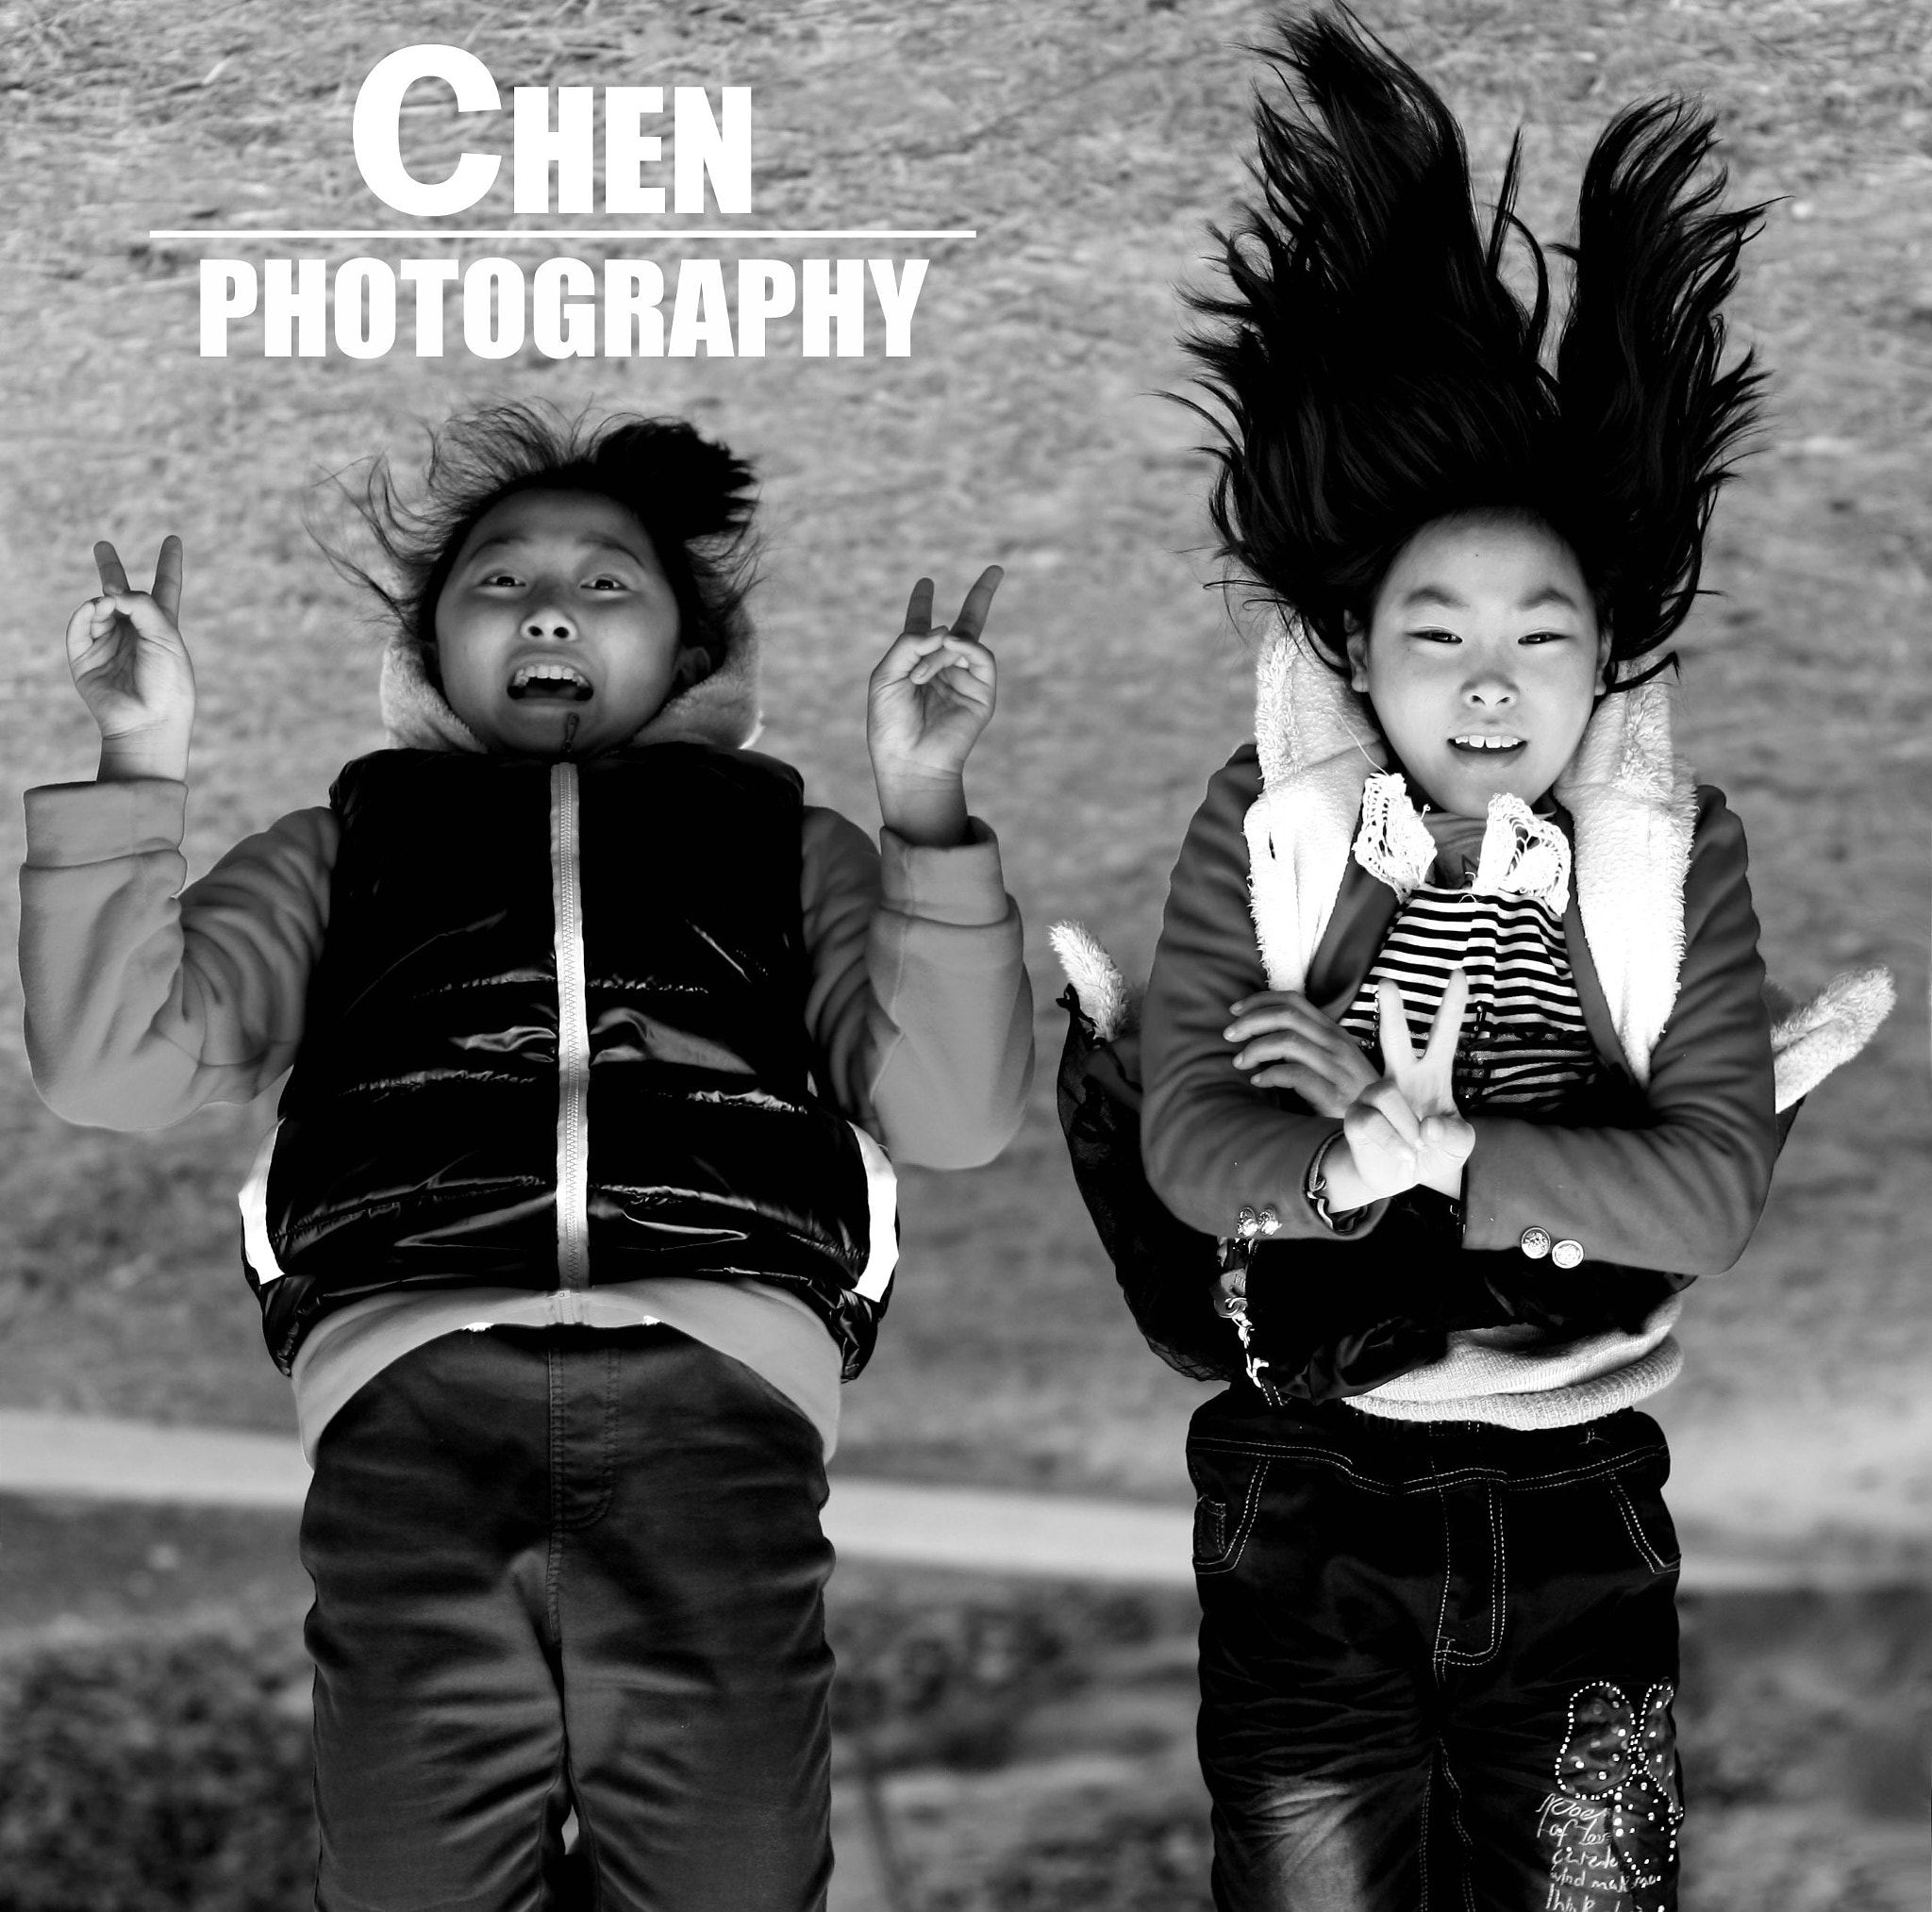 Photograph About to graduate by Evan Chen on 500px